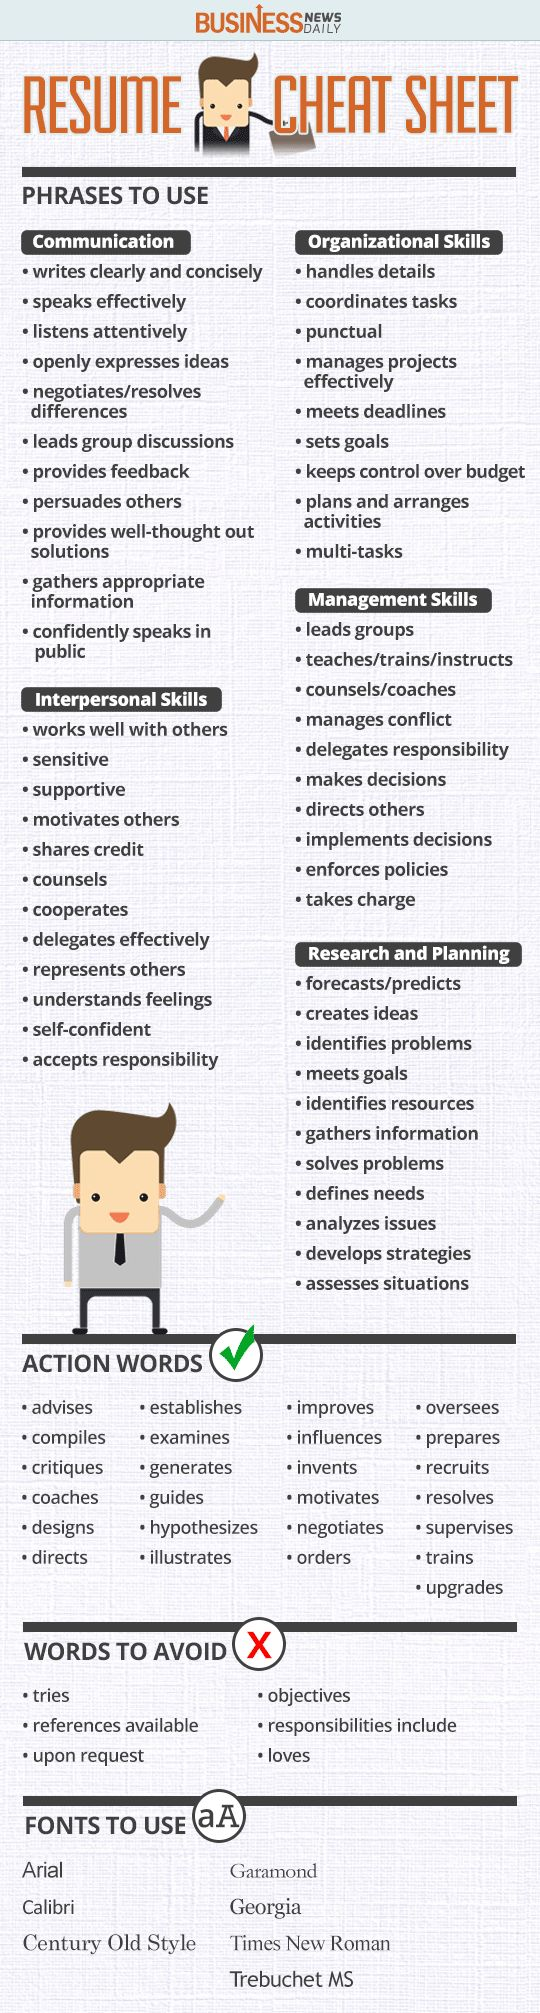 Opposenewapstandardsus  Seductive  Ideas About Resume On Pinterest  Cv Format Resume Cv And  With Magnificent Resume Cheat Sheet Infographic Andrews Almost Done With A Complete Unit On Employment Which With Amazing Front End Developer Resume Also Customer Service Manager Resume In Addition Uga Resume Builder And Marketing Resumes As Well As It Director Resume Additionally Plain Text Resume From Pinterestcom With Opposenewapstandardsus  Magnificent  Ideas About Resume On Pinterest  Cv Format Resume Cv And  With Amazing Resume Cheat Sheet Infographic Andrews Almost Done With A Complete Unit On Employment Which And Seductive Front End Developer Resume Also Customer Service Manager Resume In Addition Uga Resume Builder From Pinterestcom